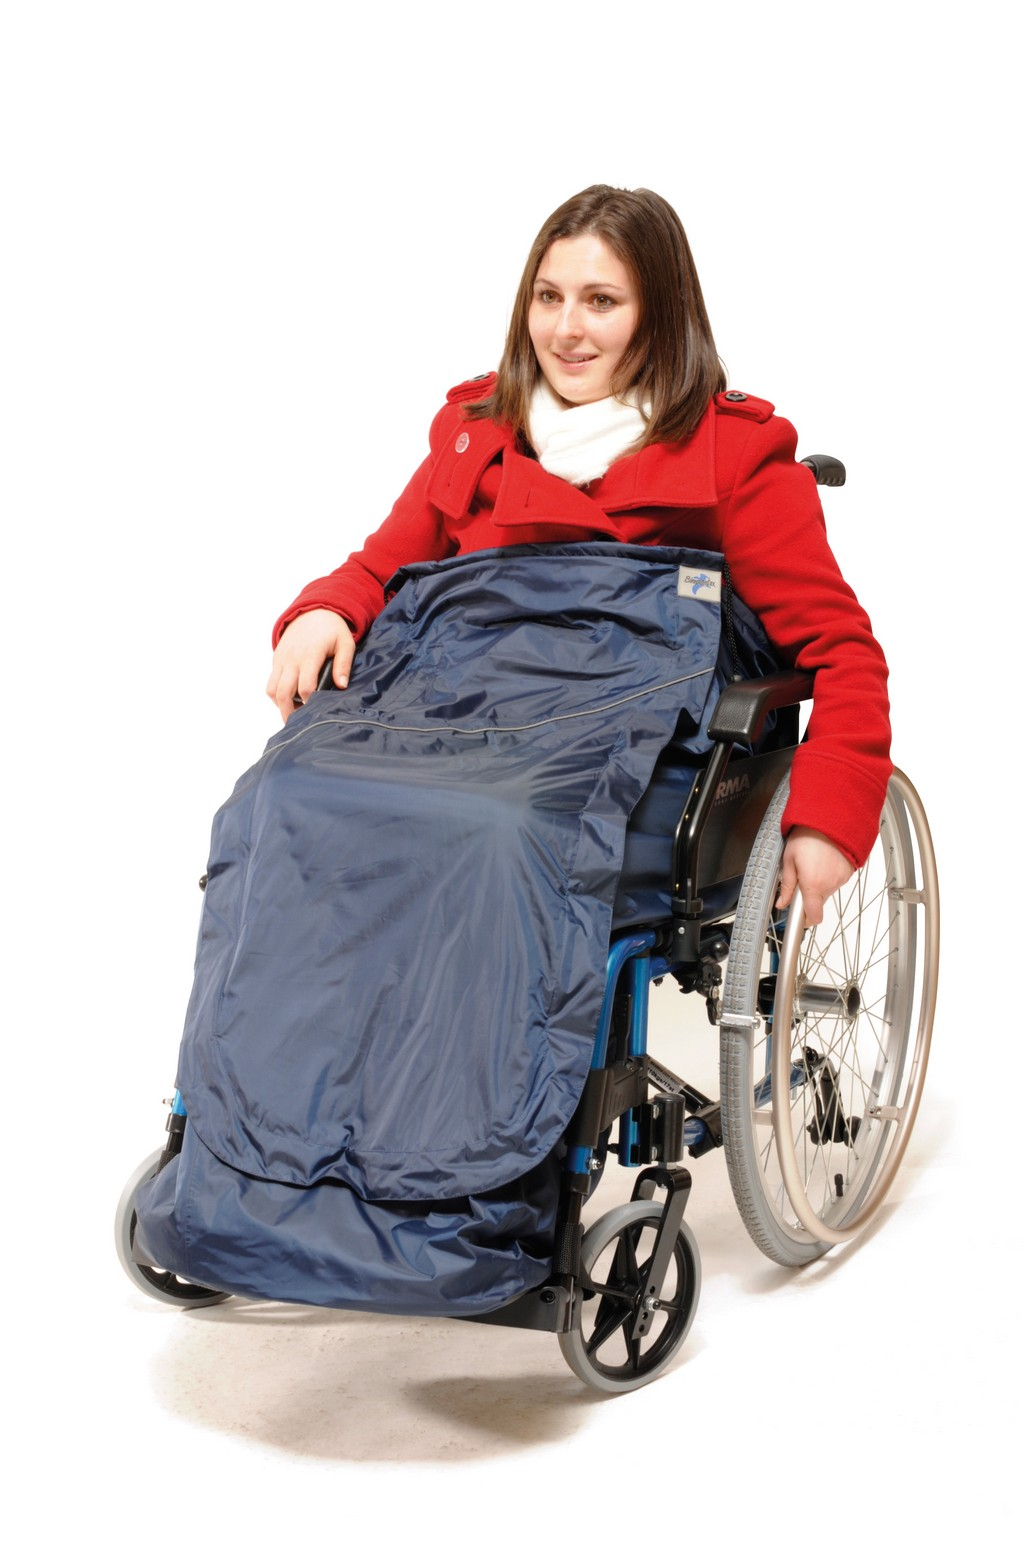 best wheelchair cushion for hemorrhoids, wheelchair cushion covers, power wheelchair tires, wheelchair tires supreme